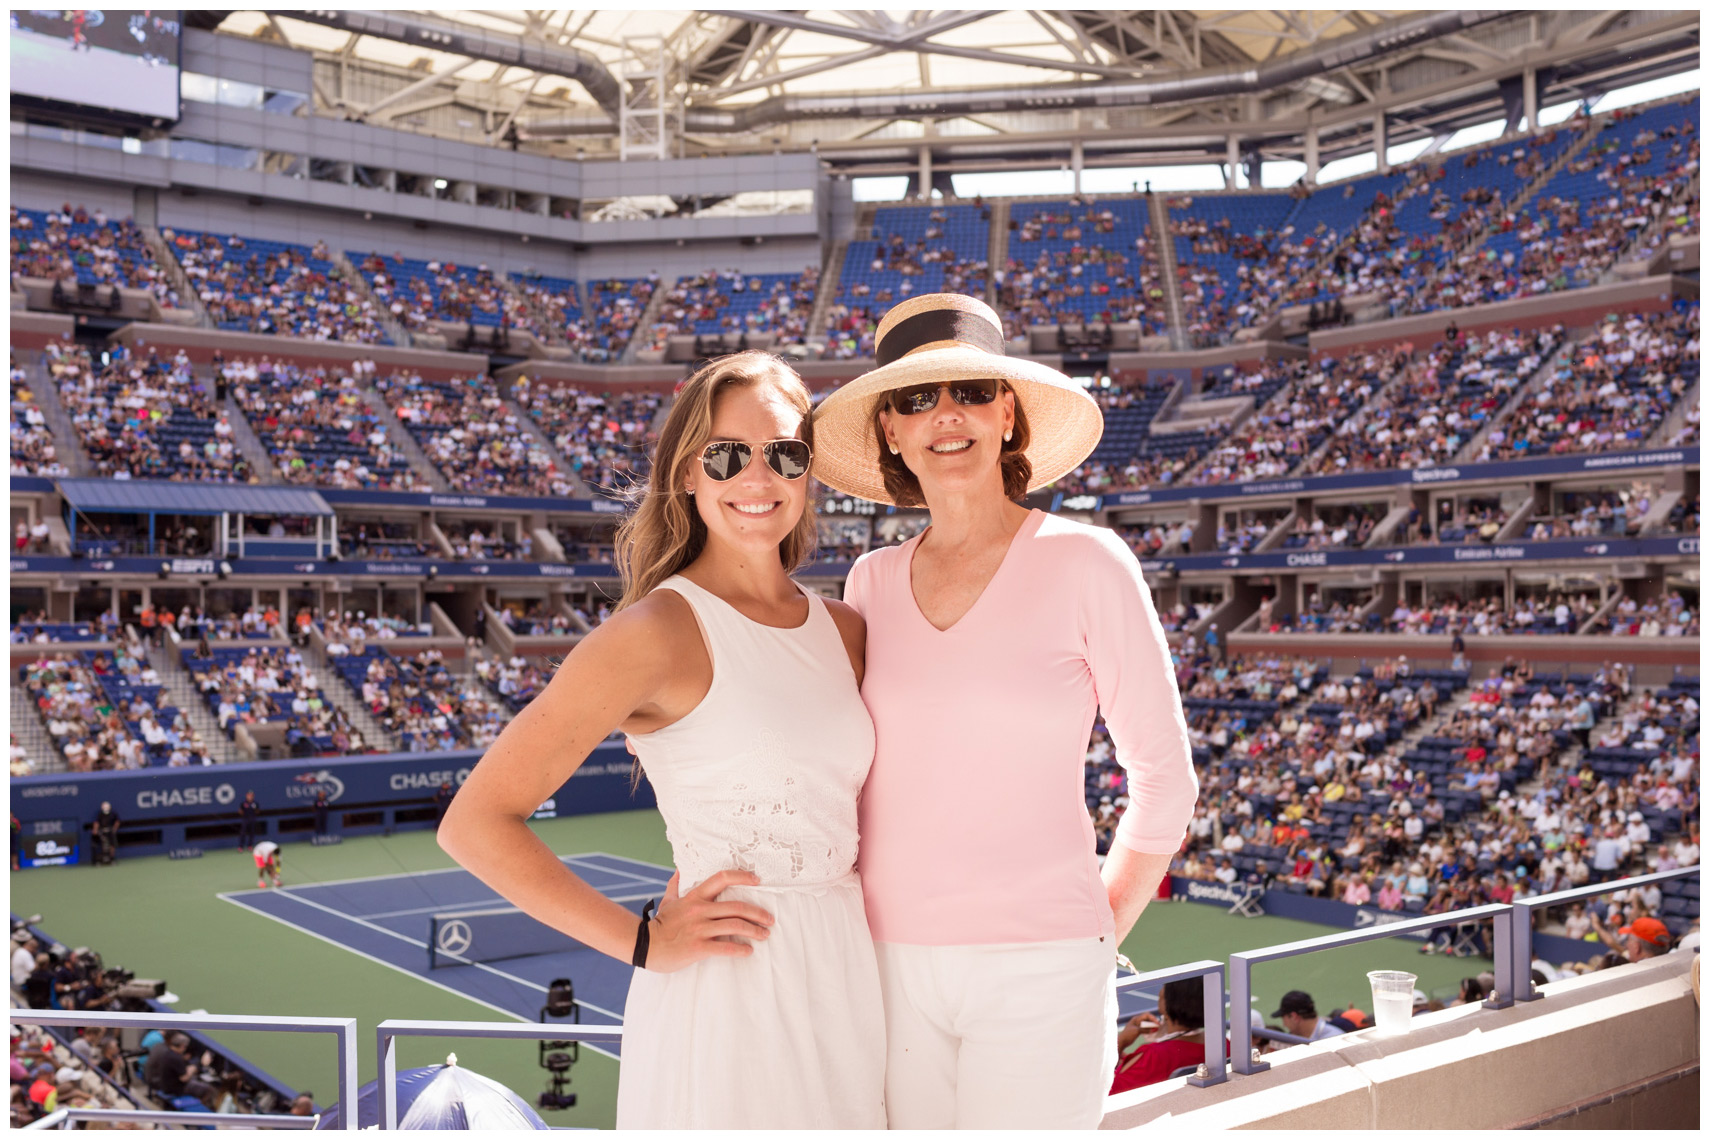 us-open-tennis-mercedes-benz-hospitality-guests